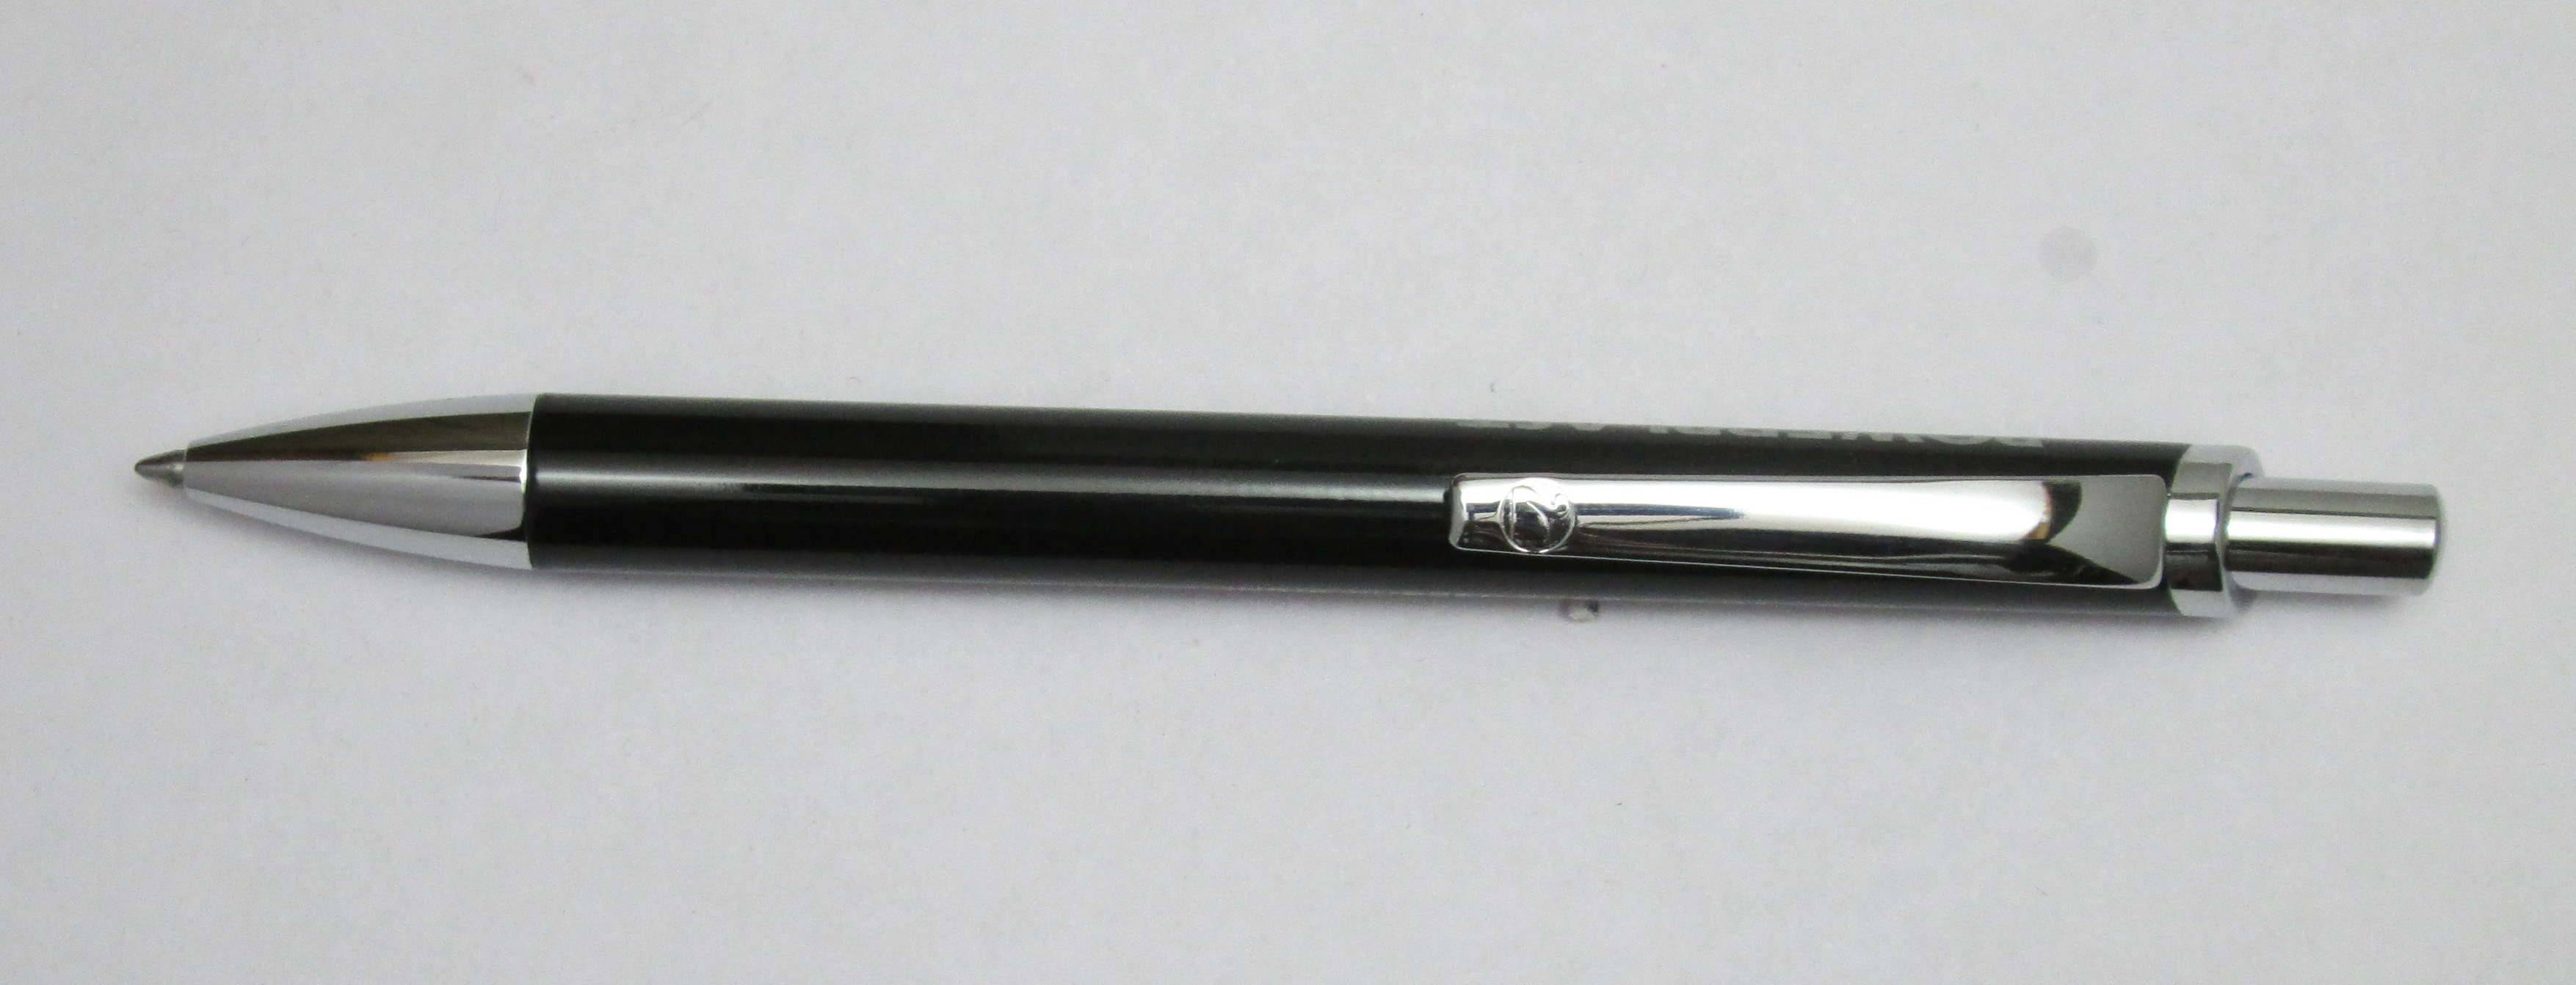 Rocket Black Ball Pen